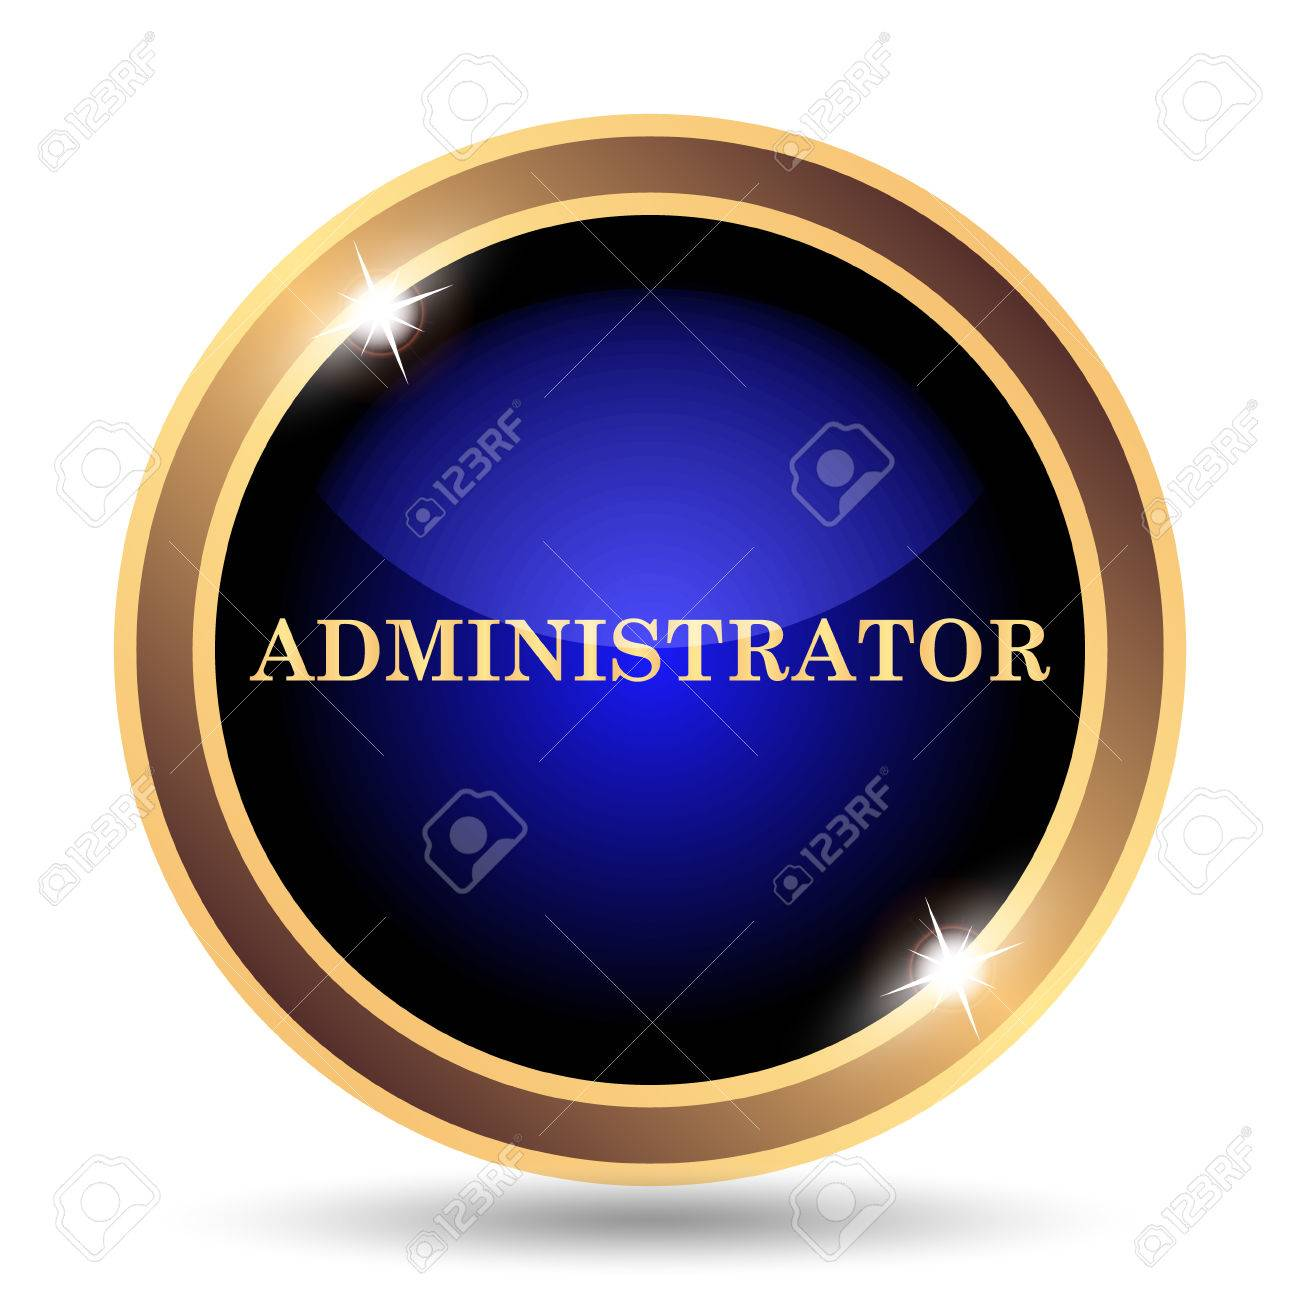 Service Center Administrator for DR Congo | Find all the Relevant